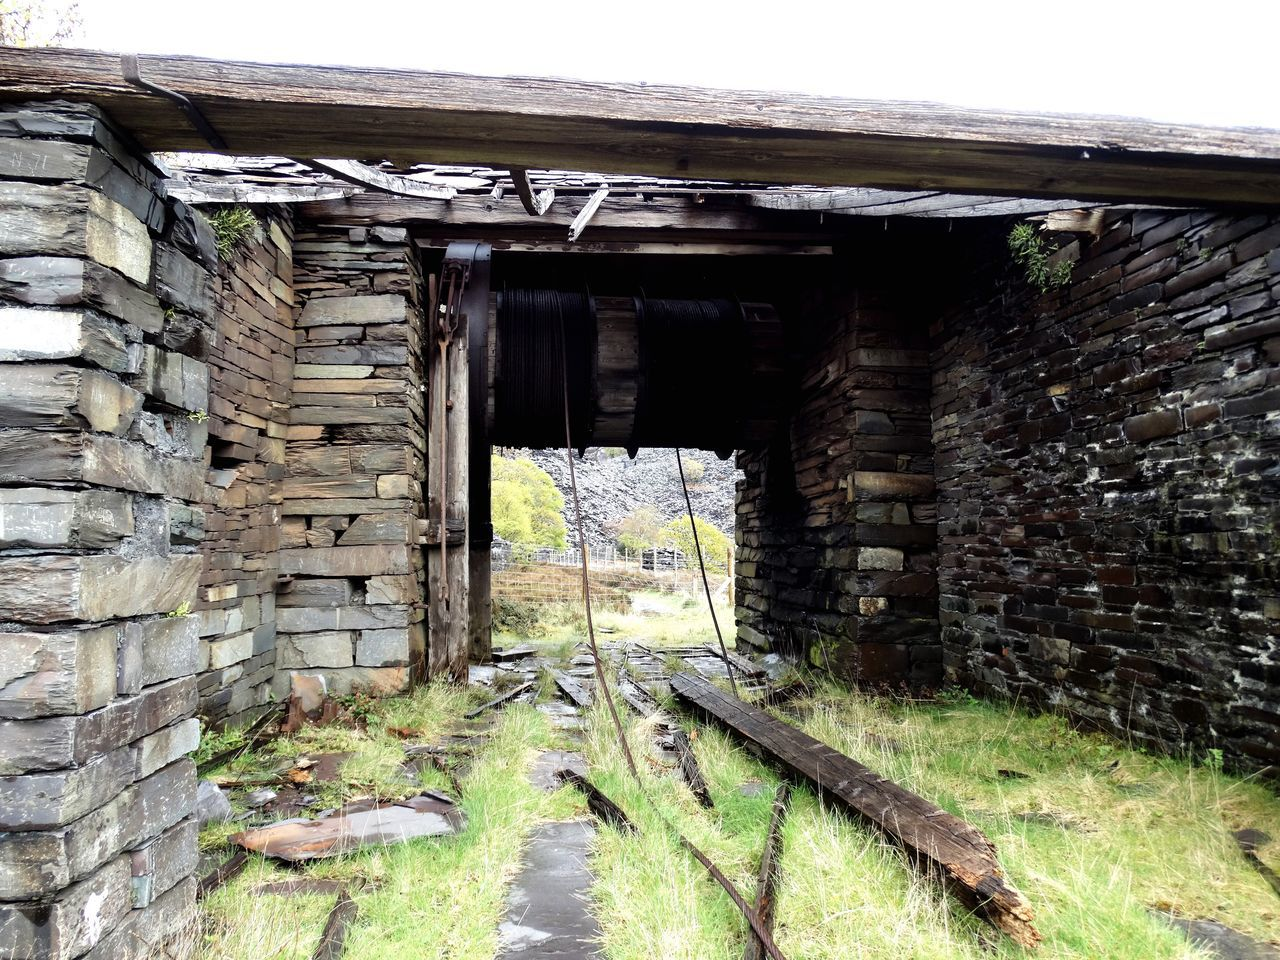 Abandoned mine works. Built Structure Architecture Open No People Day Building Exterior Outdoors Old Abandoned Abandoned Places Abandoned Buildings Building Old Buildings Broken Wall Nature Mining Mining Industry Old Mine Historic